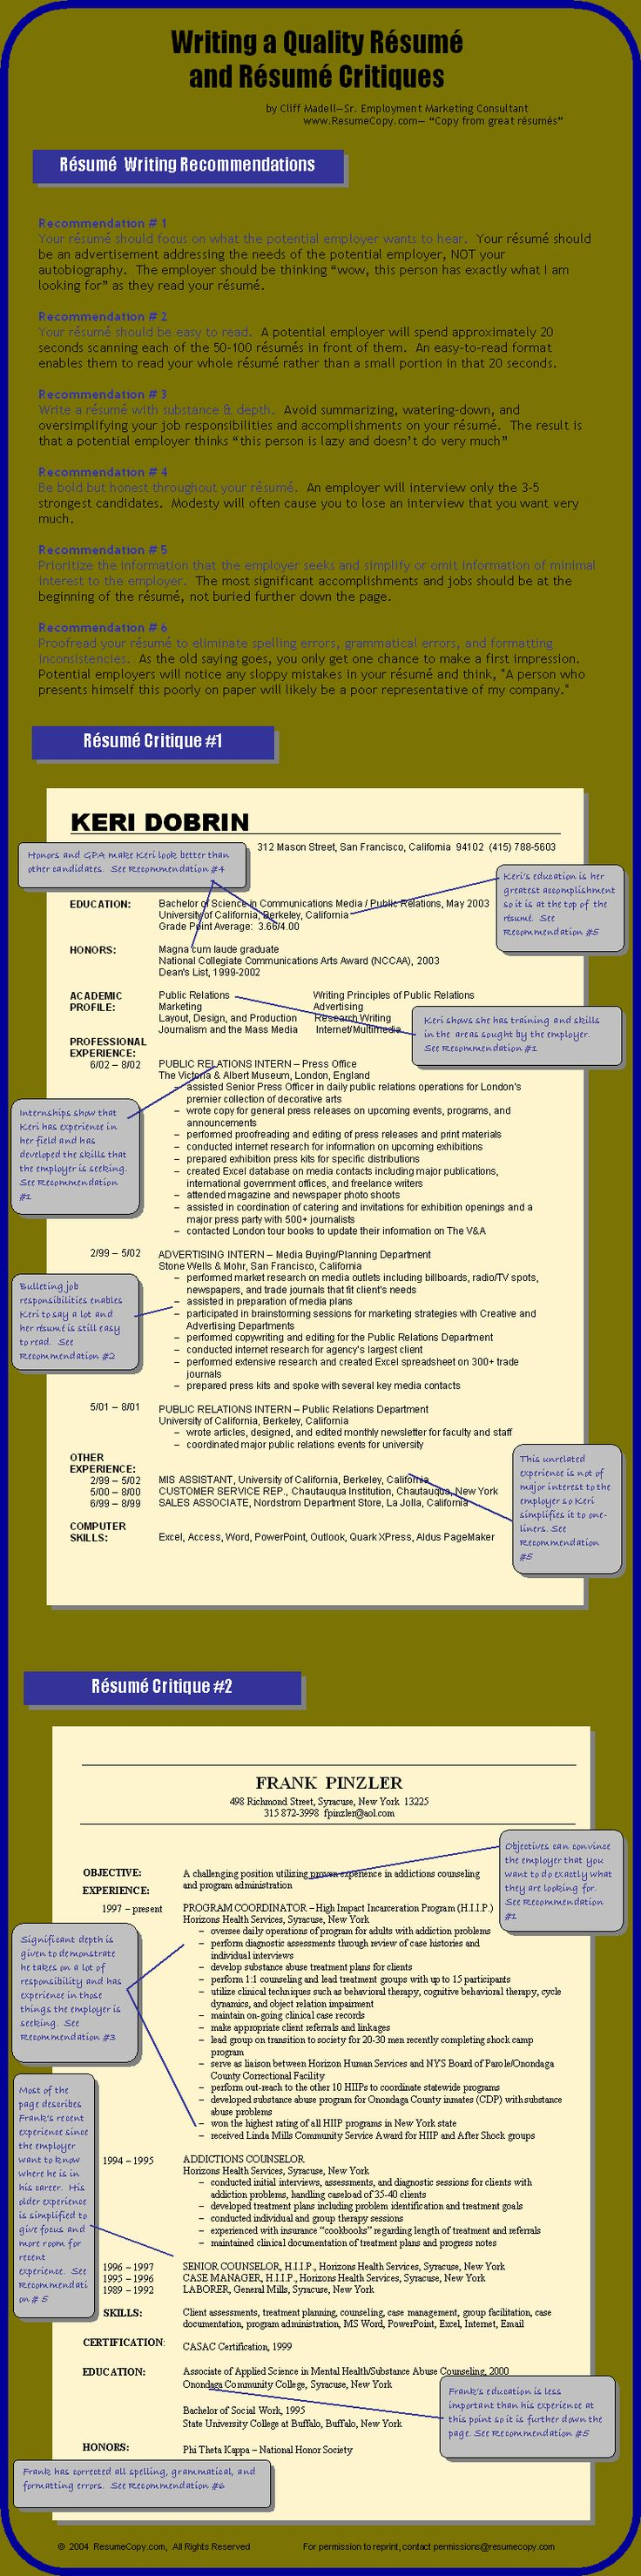 Find A Job Canada   Resume Writing Tips